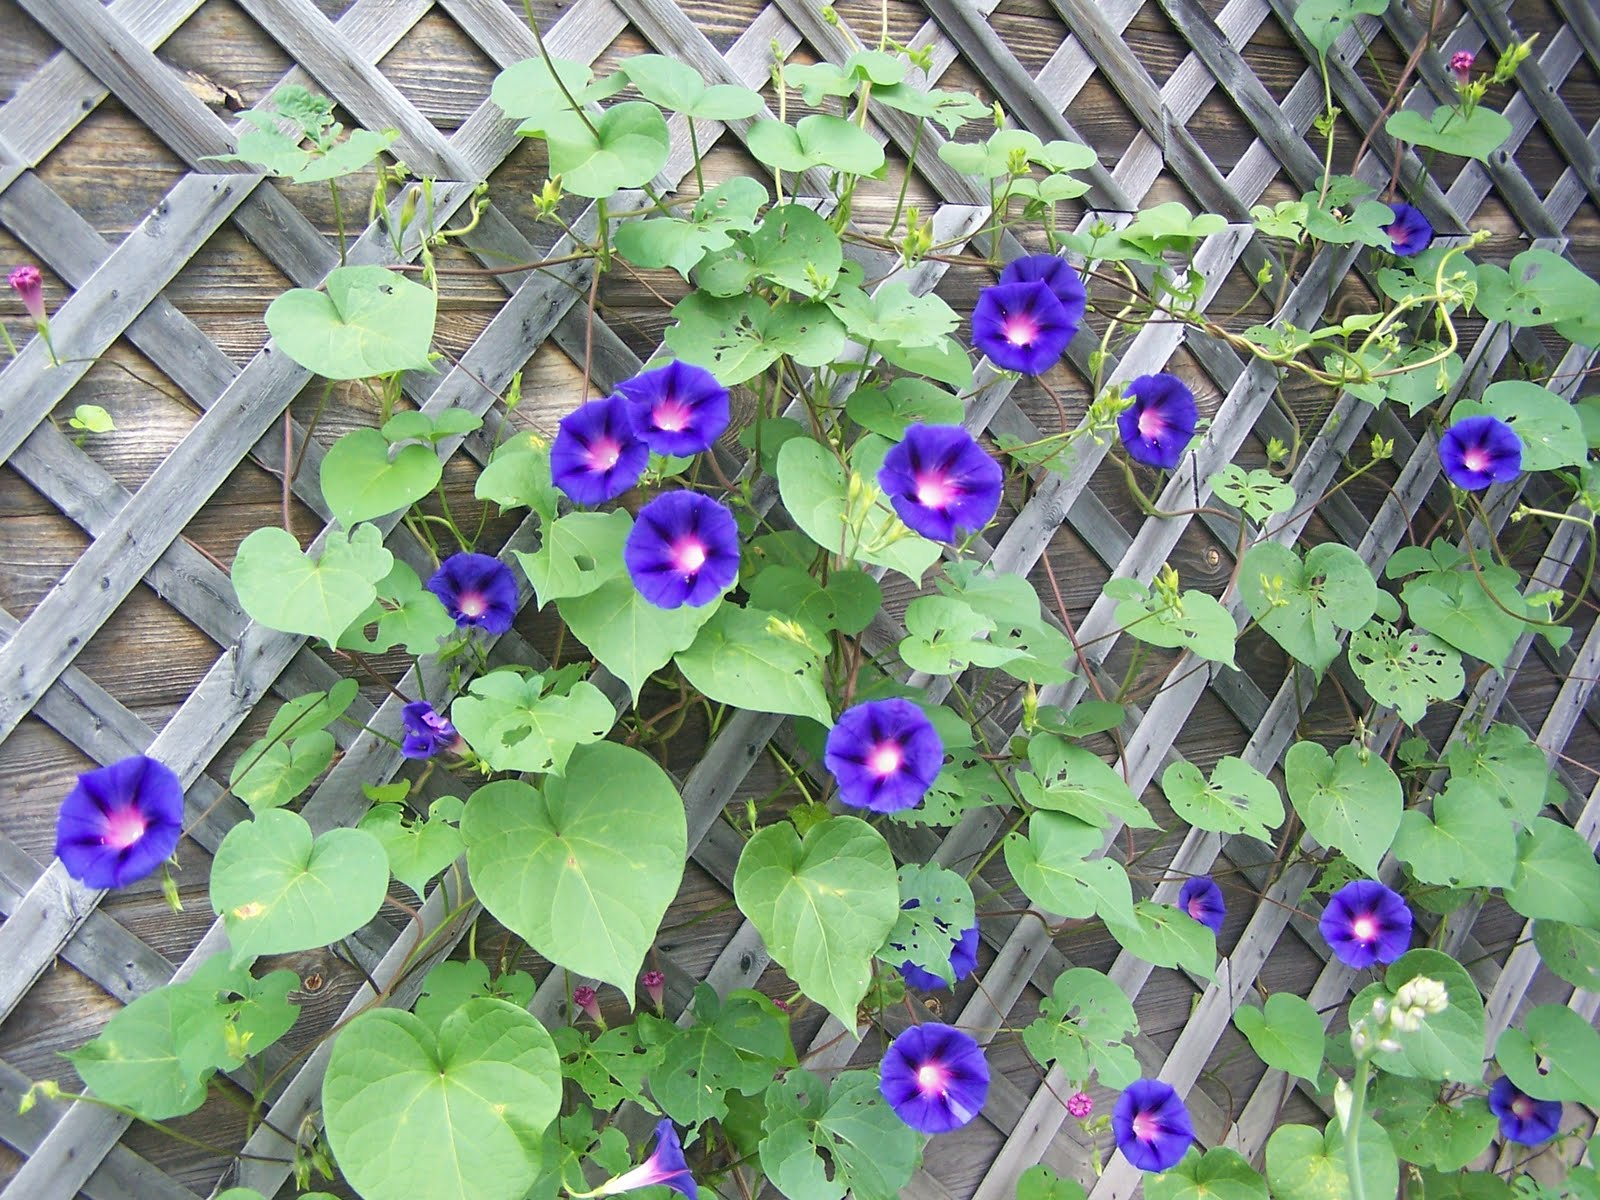 Morning glory flower coloring pages - Good Morning Glories